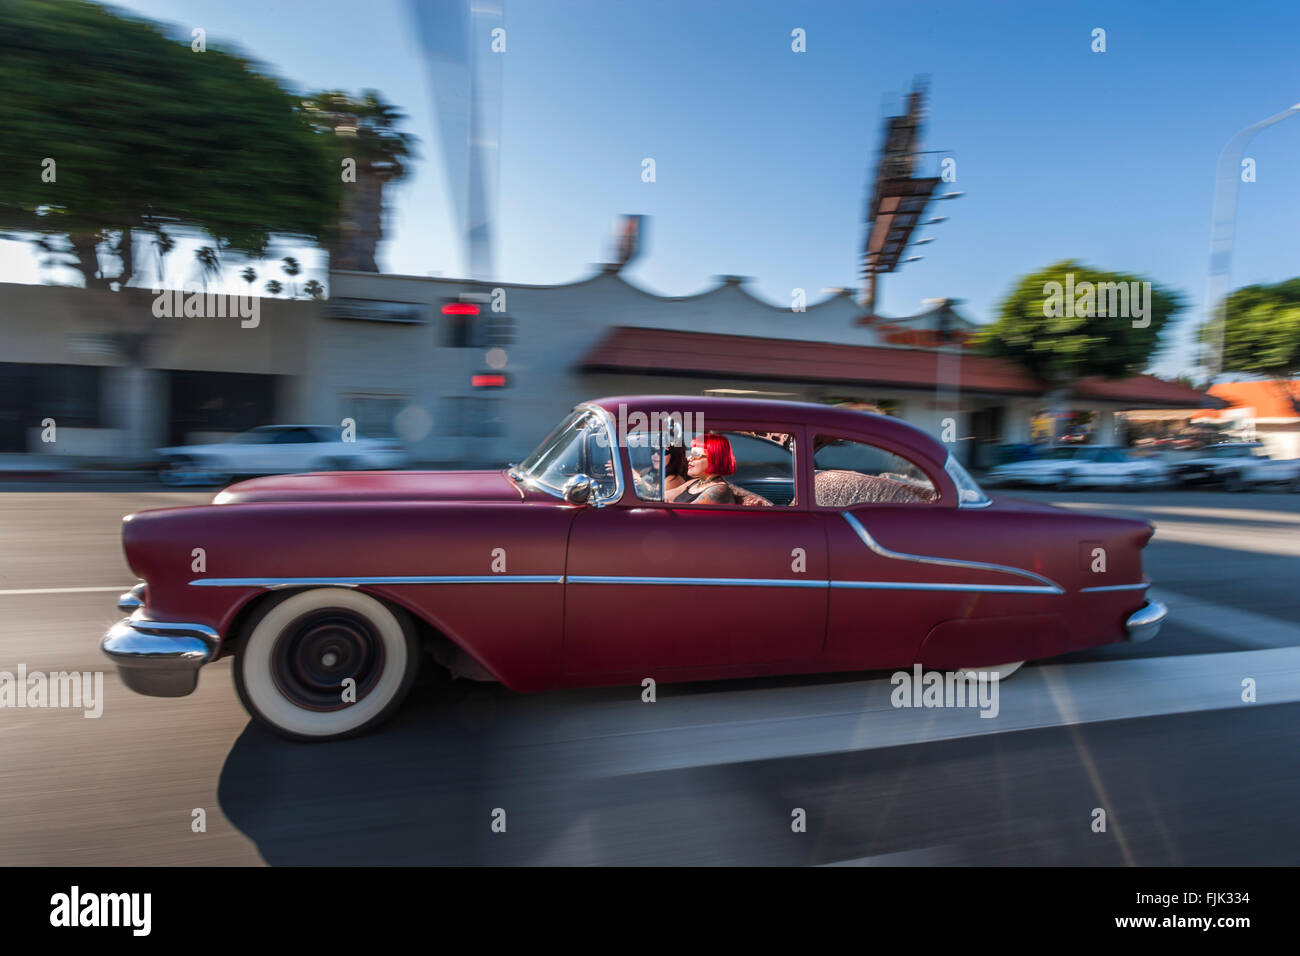 LOS ANGELES, CA – JUNE 29: Female latina's driving through Los Angeles, California on June 29, 2005. - Stock Image